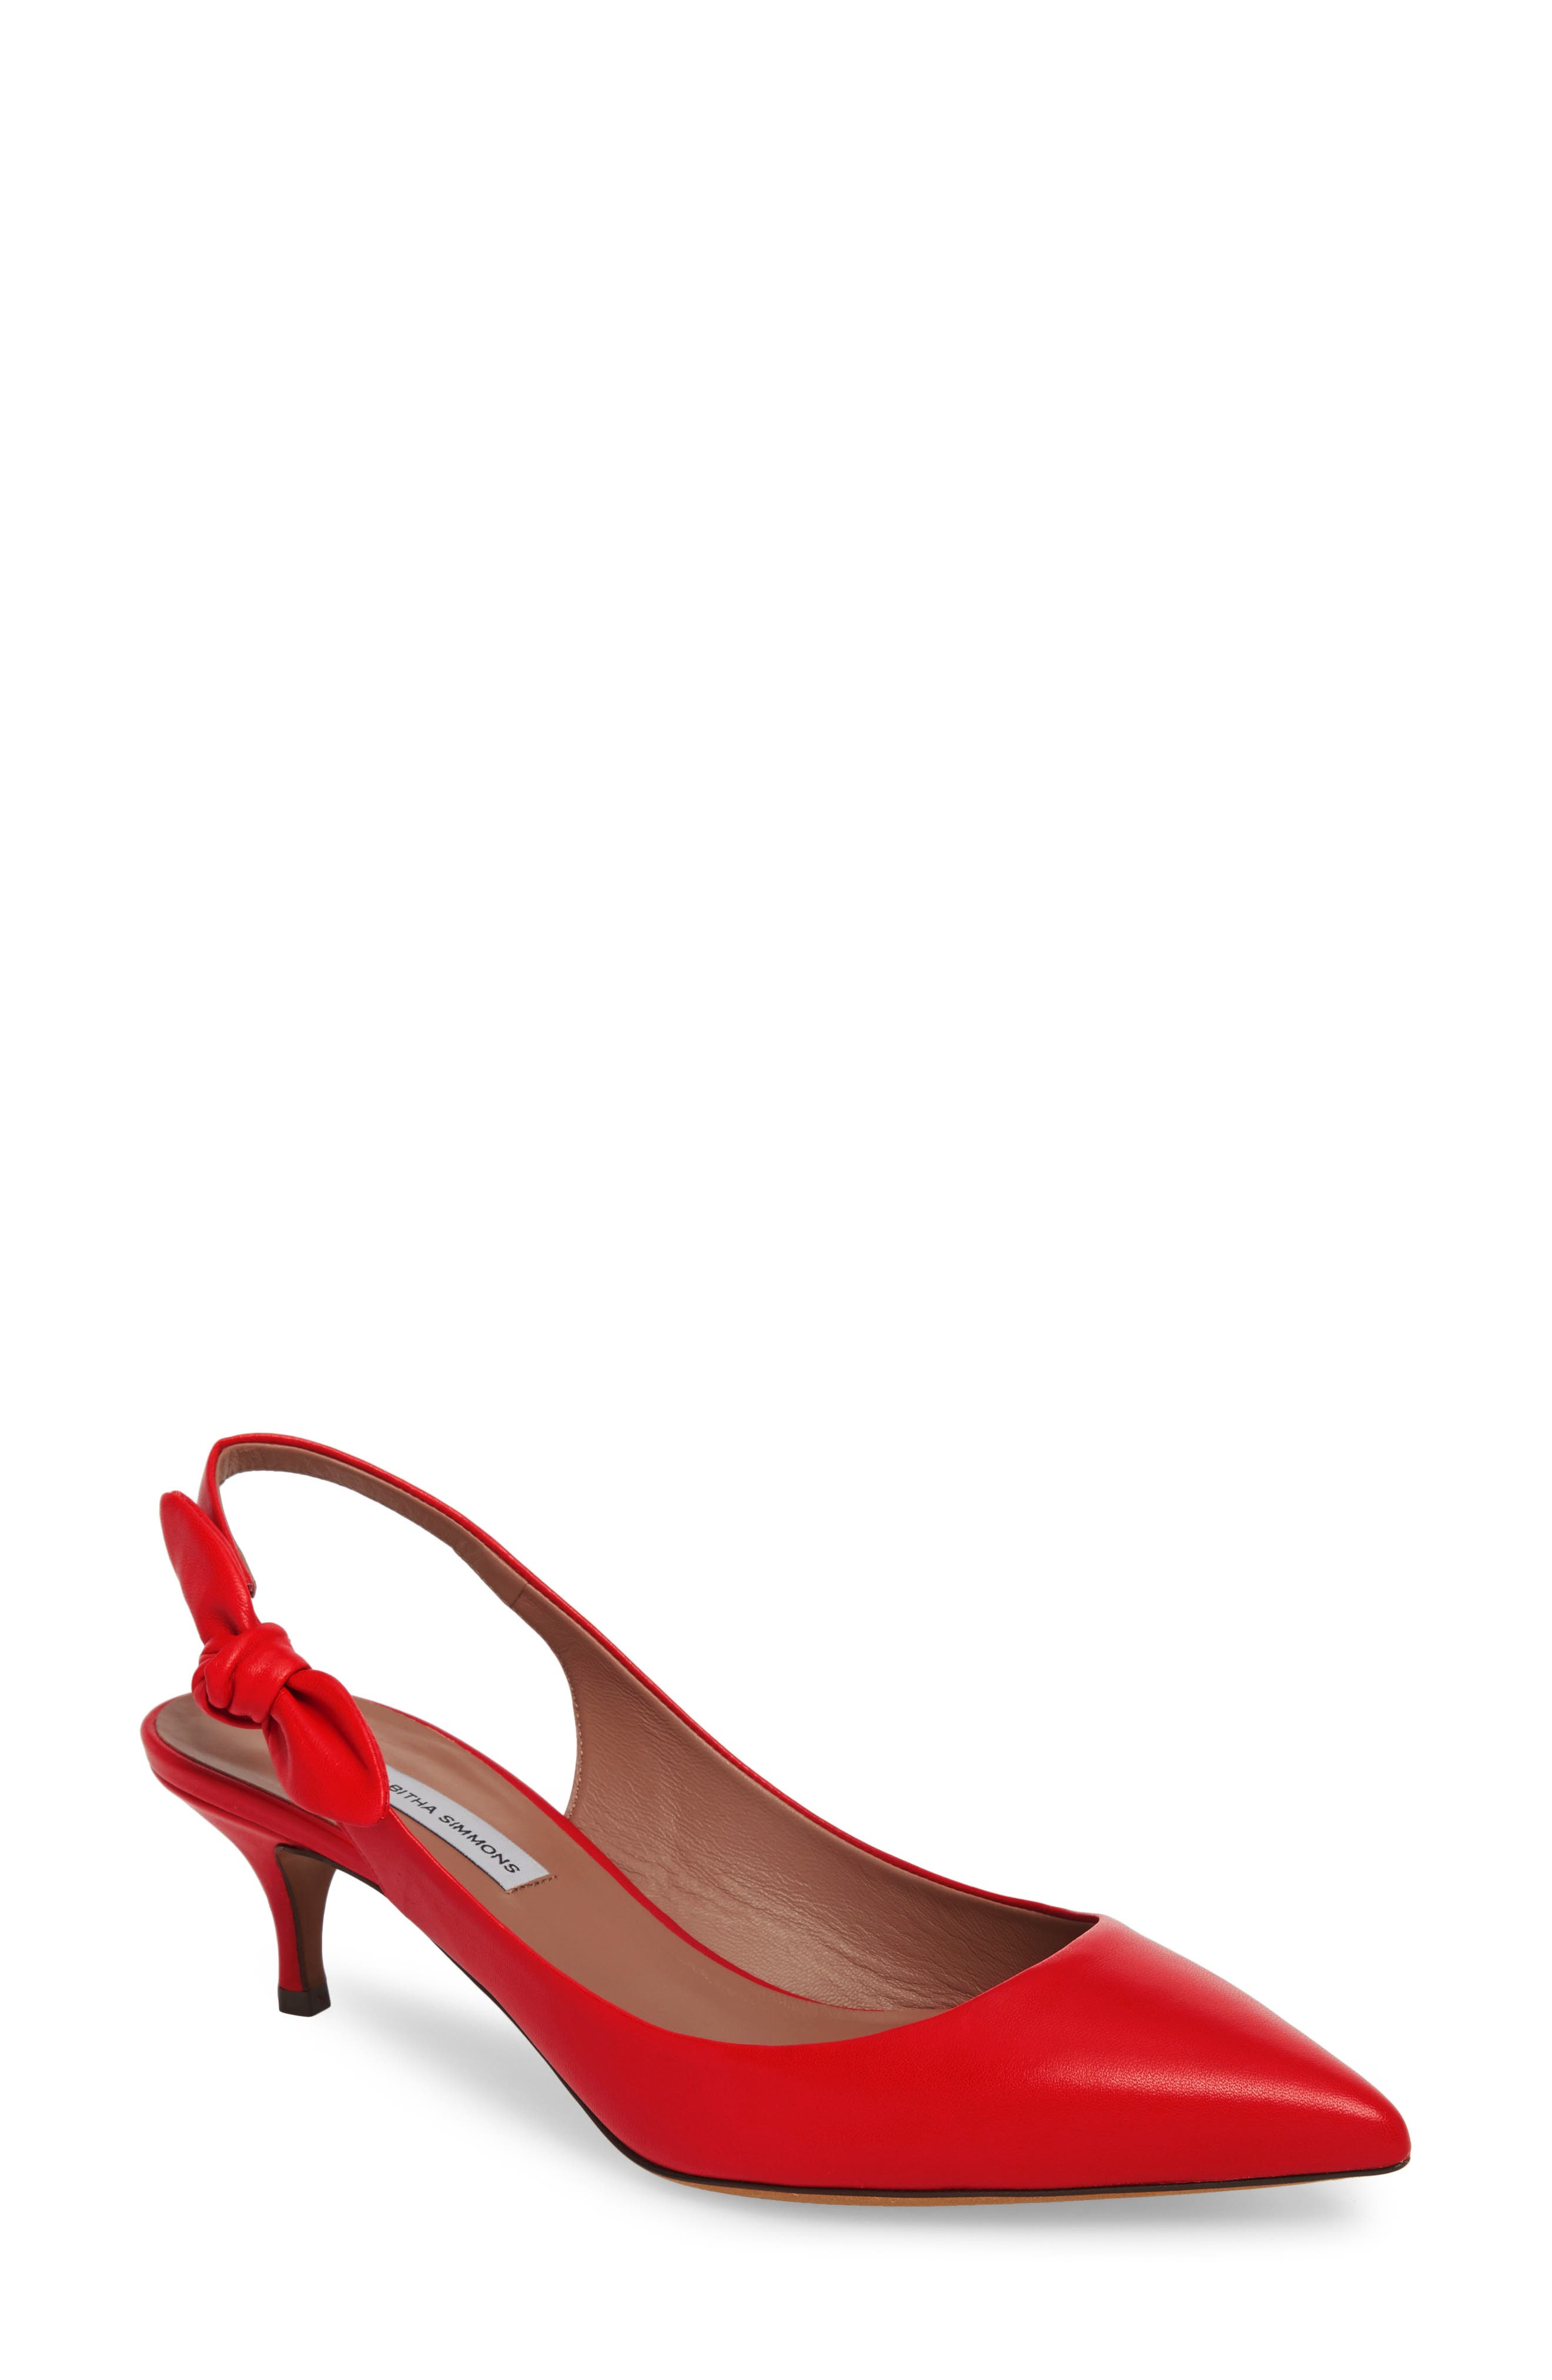 Rise Bow Slingback Pump,                             Main thumbnail 1, color,                             Red Leather